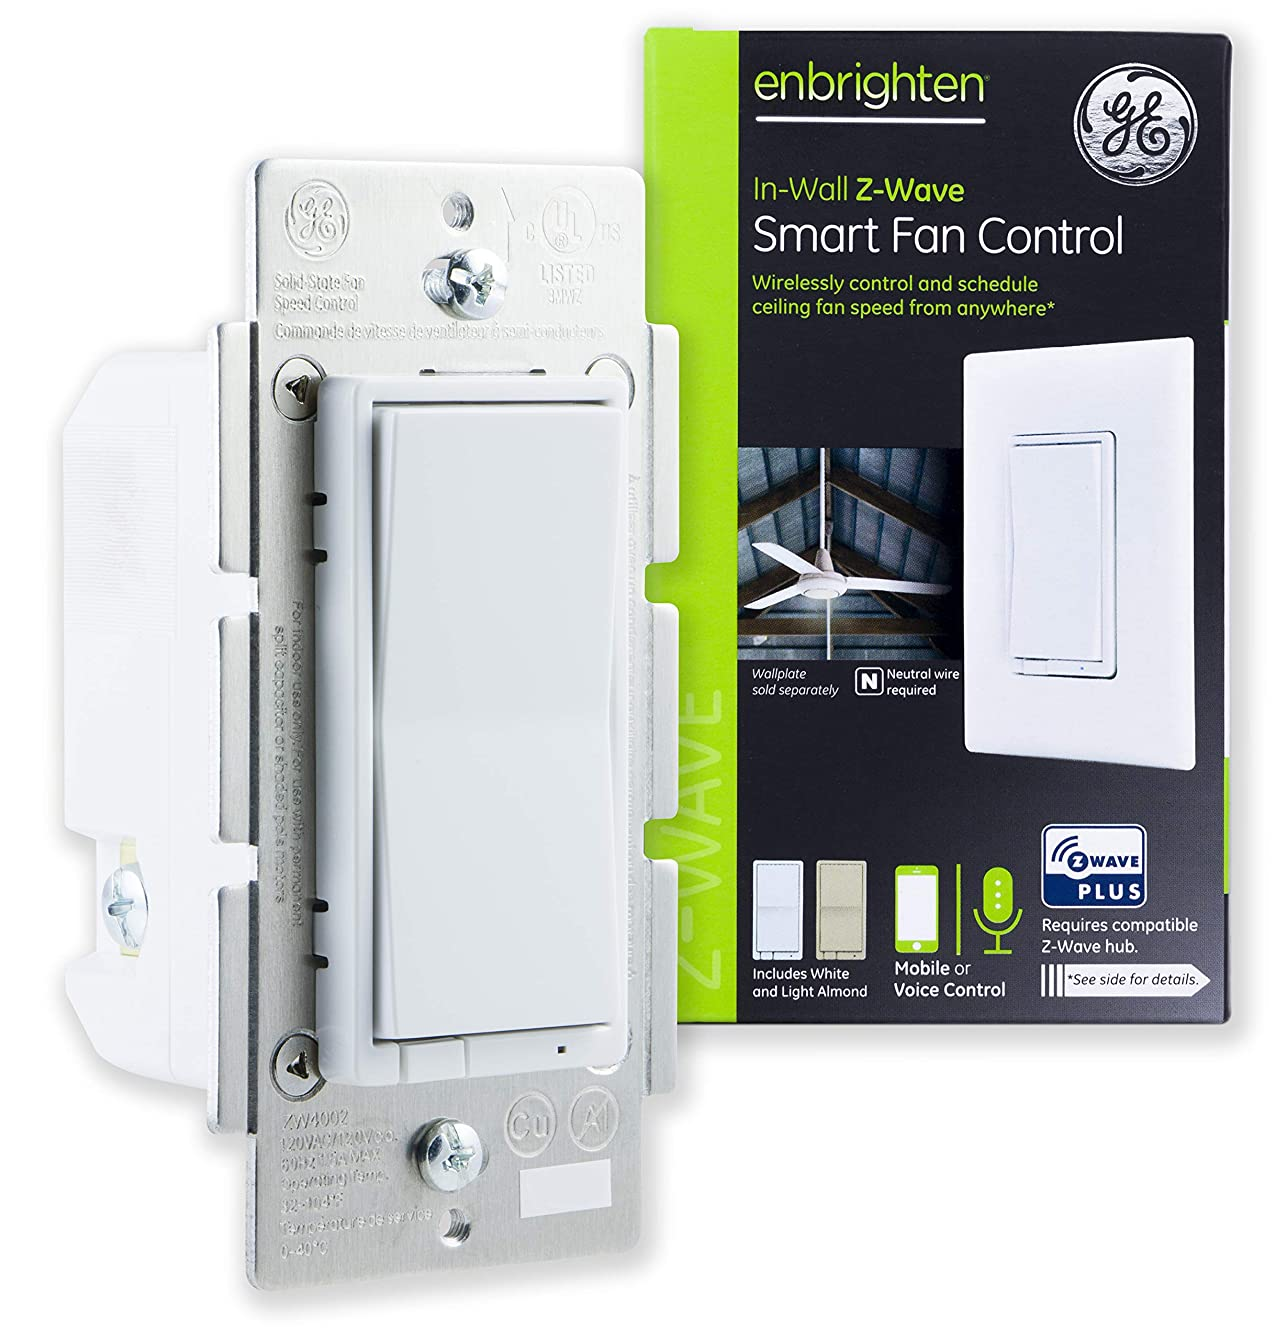 GE Enbrighten Z-Wave Plus Smart Fan Control, Speed ONLY, in-Wall, Includes White & Lt. Almond Paddles, Zwave Hub Required, Works with SmartThings Wink and Alexa, 14287, White & Light